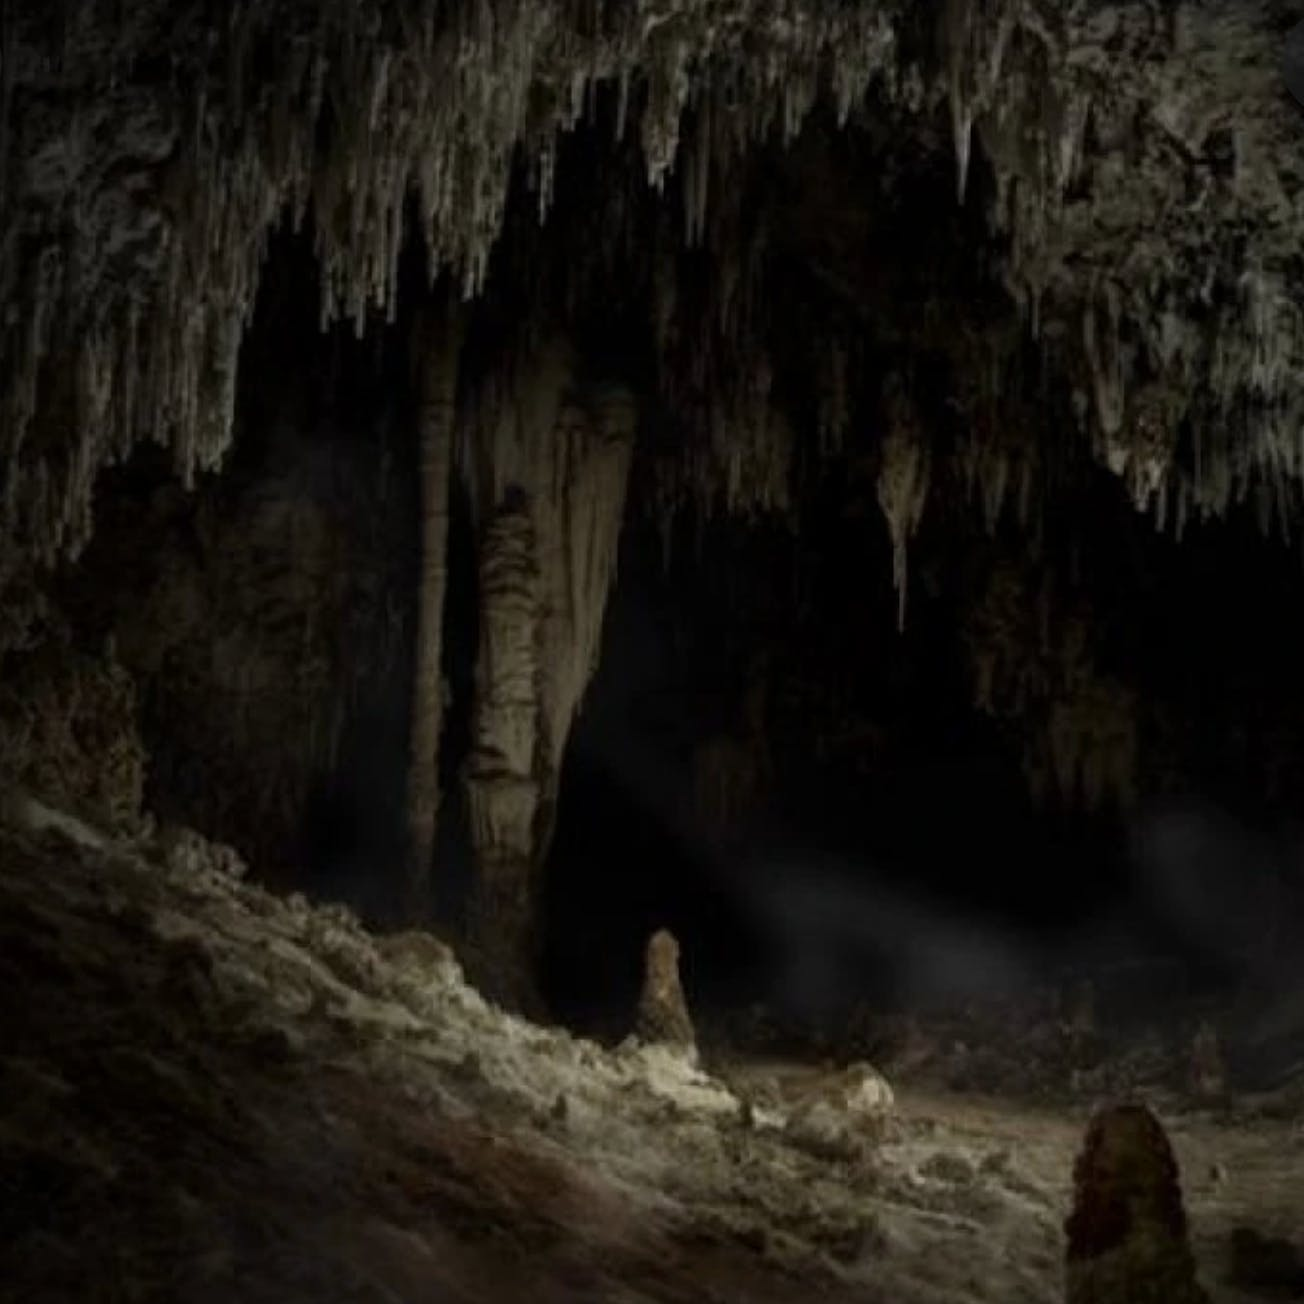 The Ulthar Caves from Hell | 3 Part Series